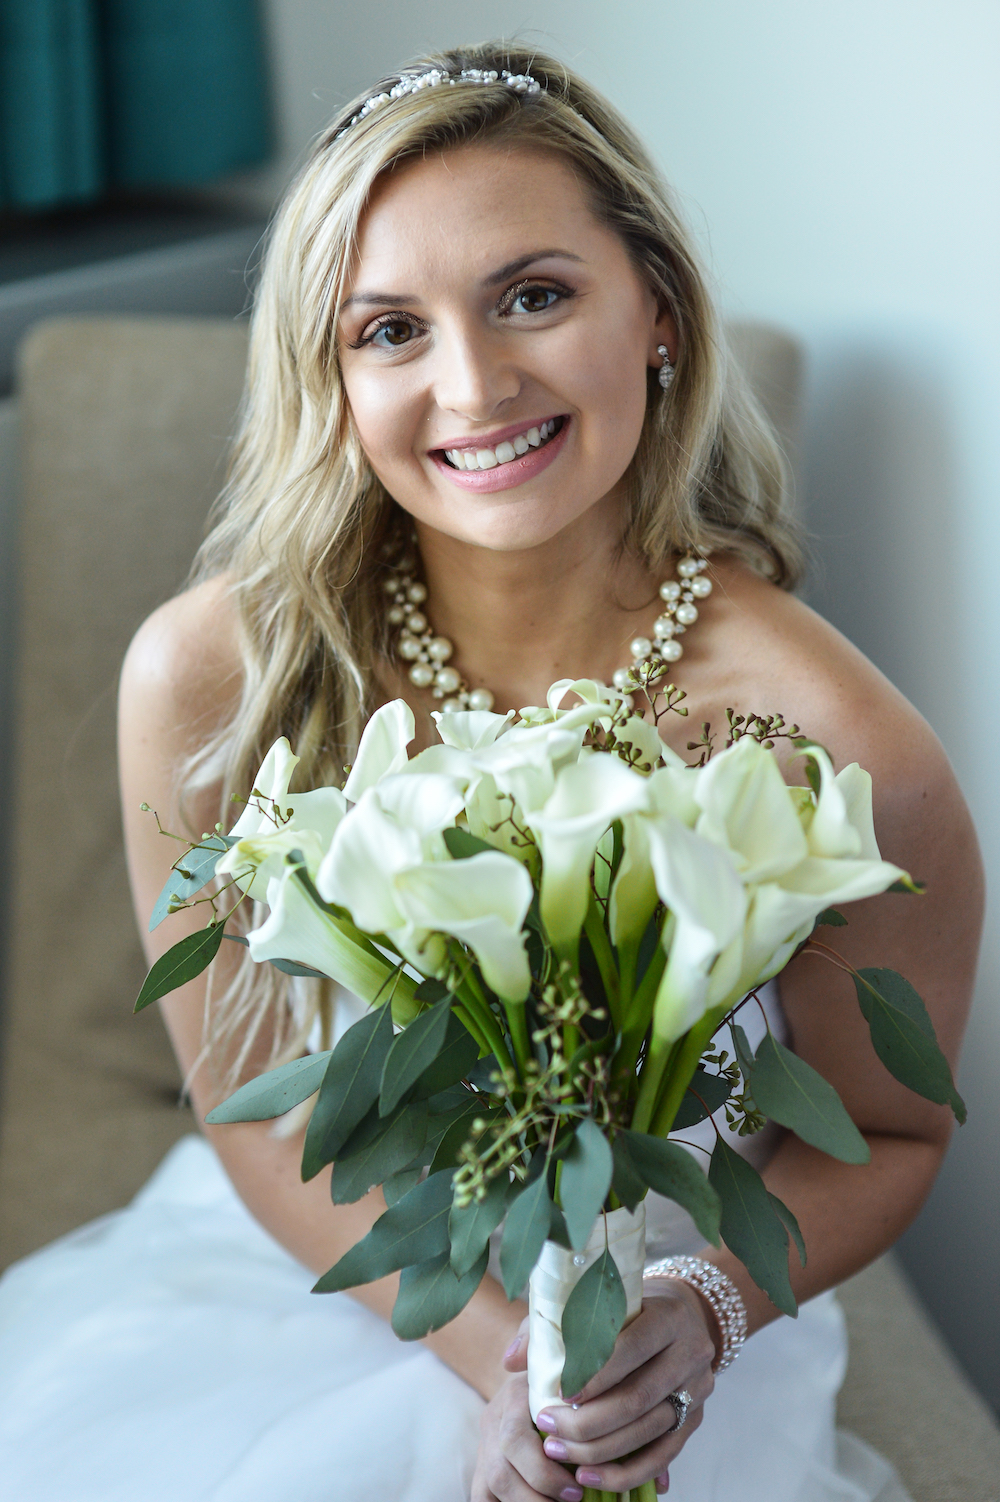 annie-in-dress-holding-bouquet-bride-prep-wedding-photography-nj